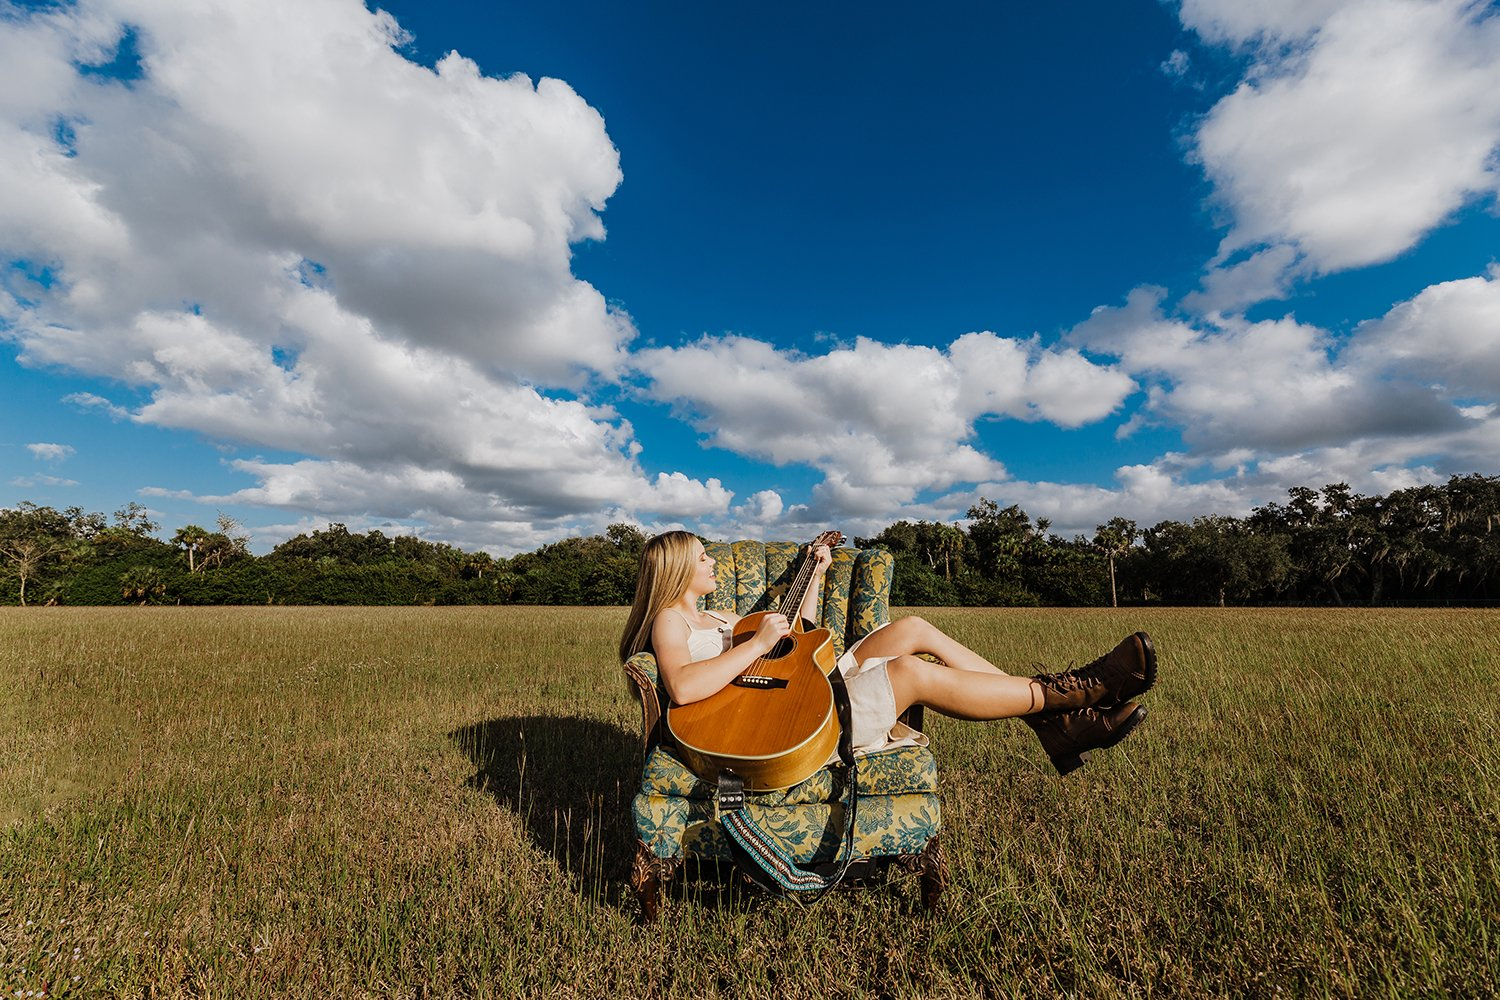 musician playing guitar in a field with big sky in Fort Myers, FL